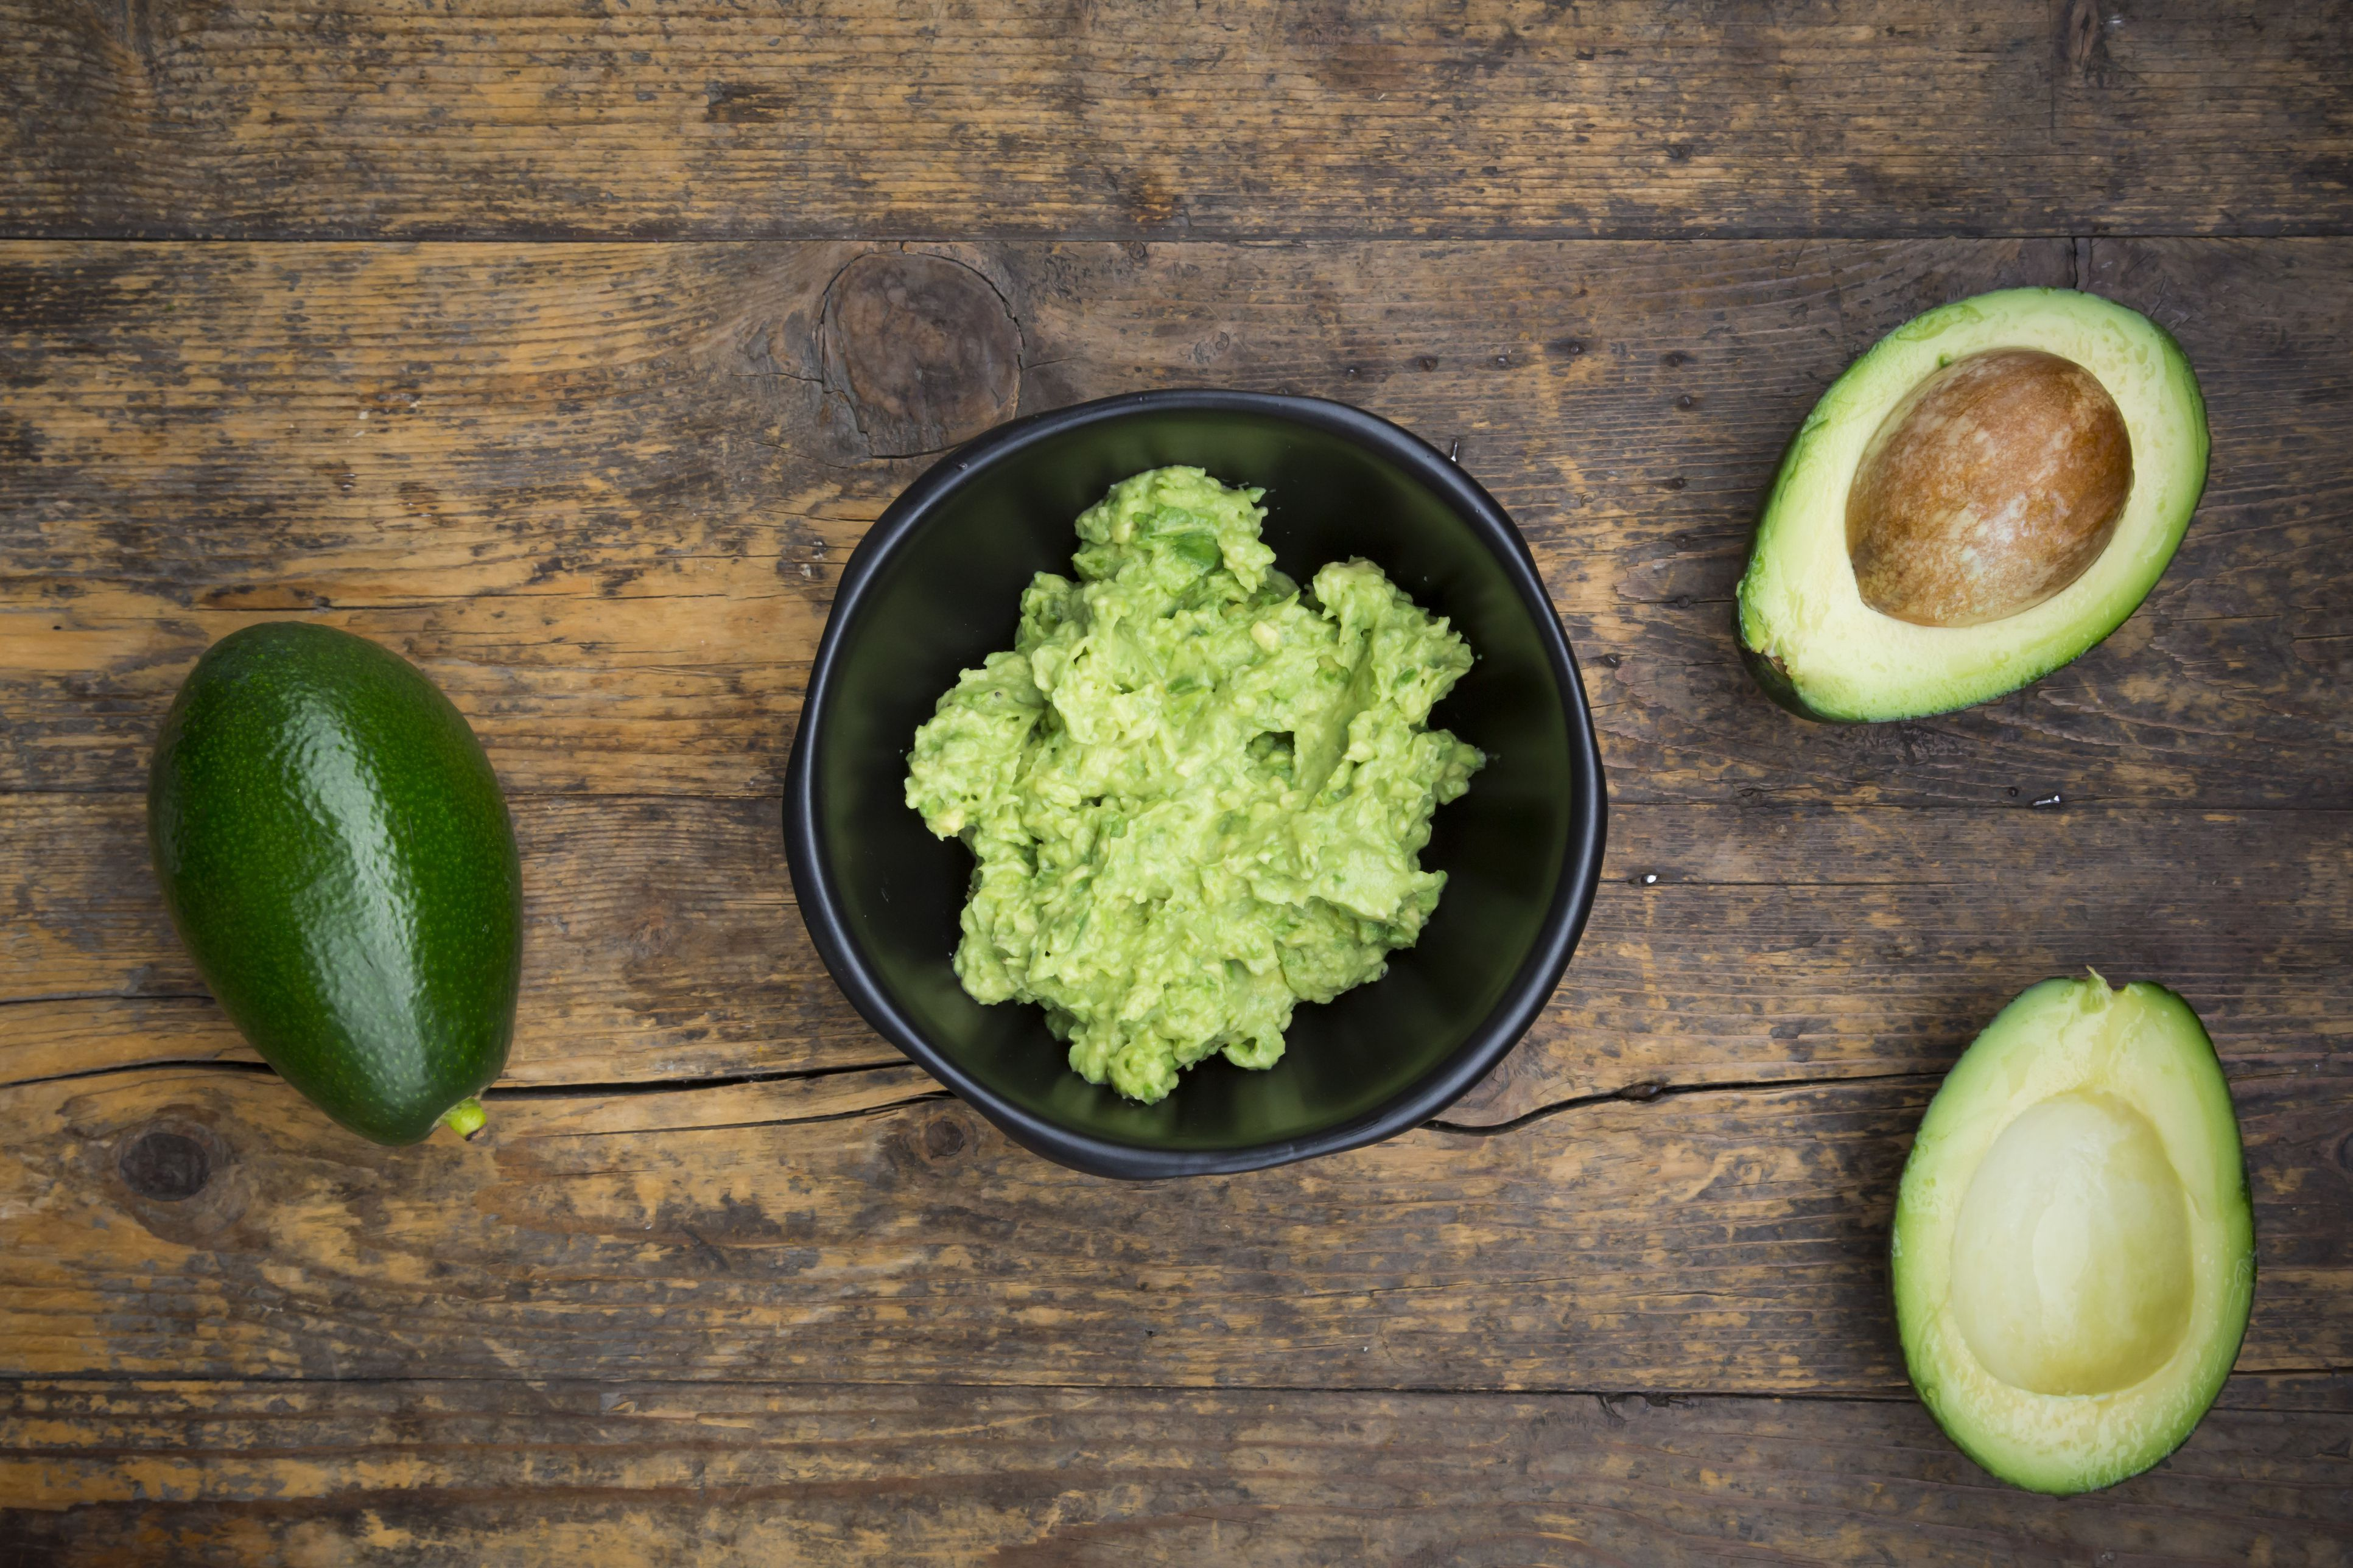 bowl-of-guacamole-and-whole-and-sliced-avocados-on-dark-wood-597065267-5997166daf5d3a00110910d9